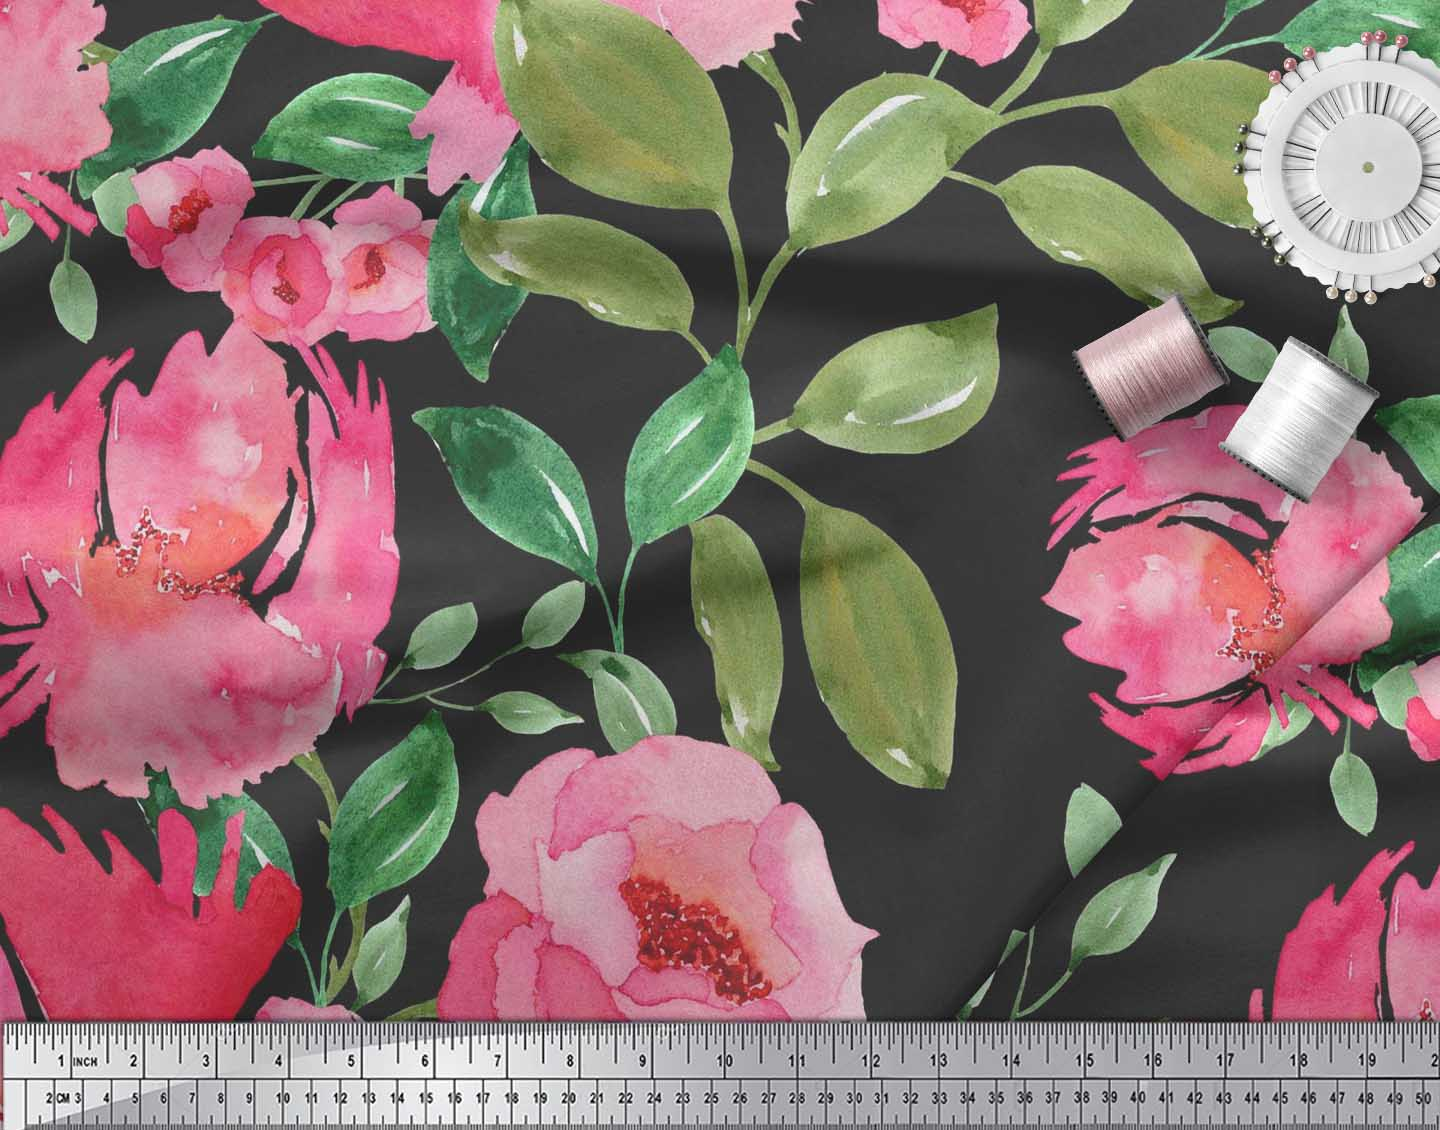 Soimoi-Cotton-Poplin-Fabric-Flower-amp-Leaves-Watercolor-Print-Fabric-Nwv thumbnail 4